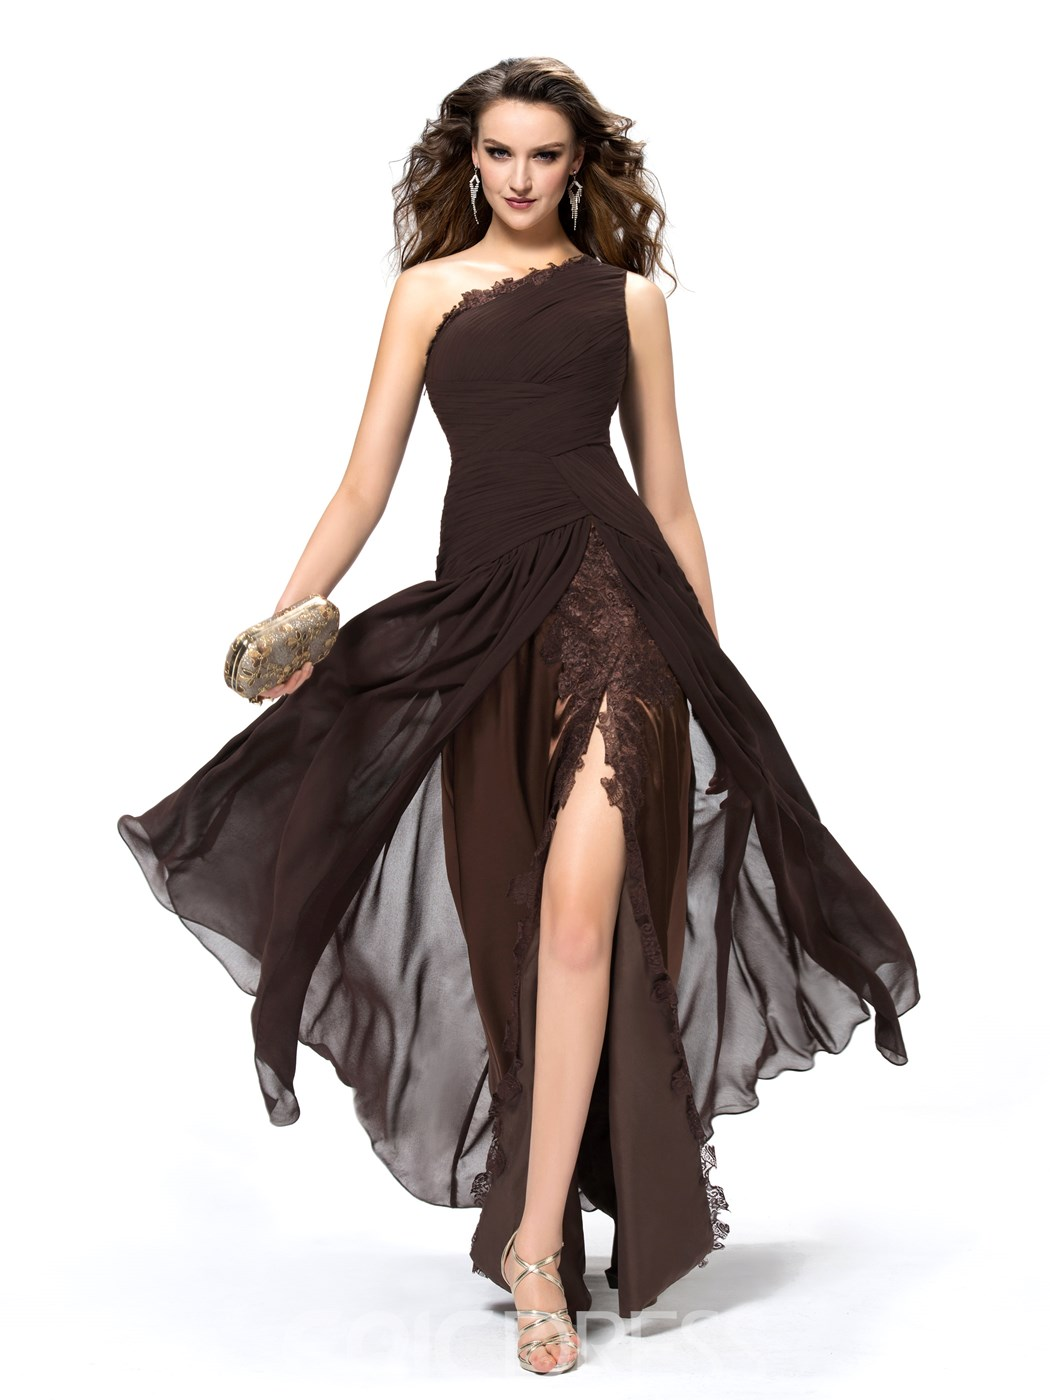 Timeless Ruffles Trupet One Shoulder Evening Dress